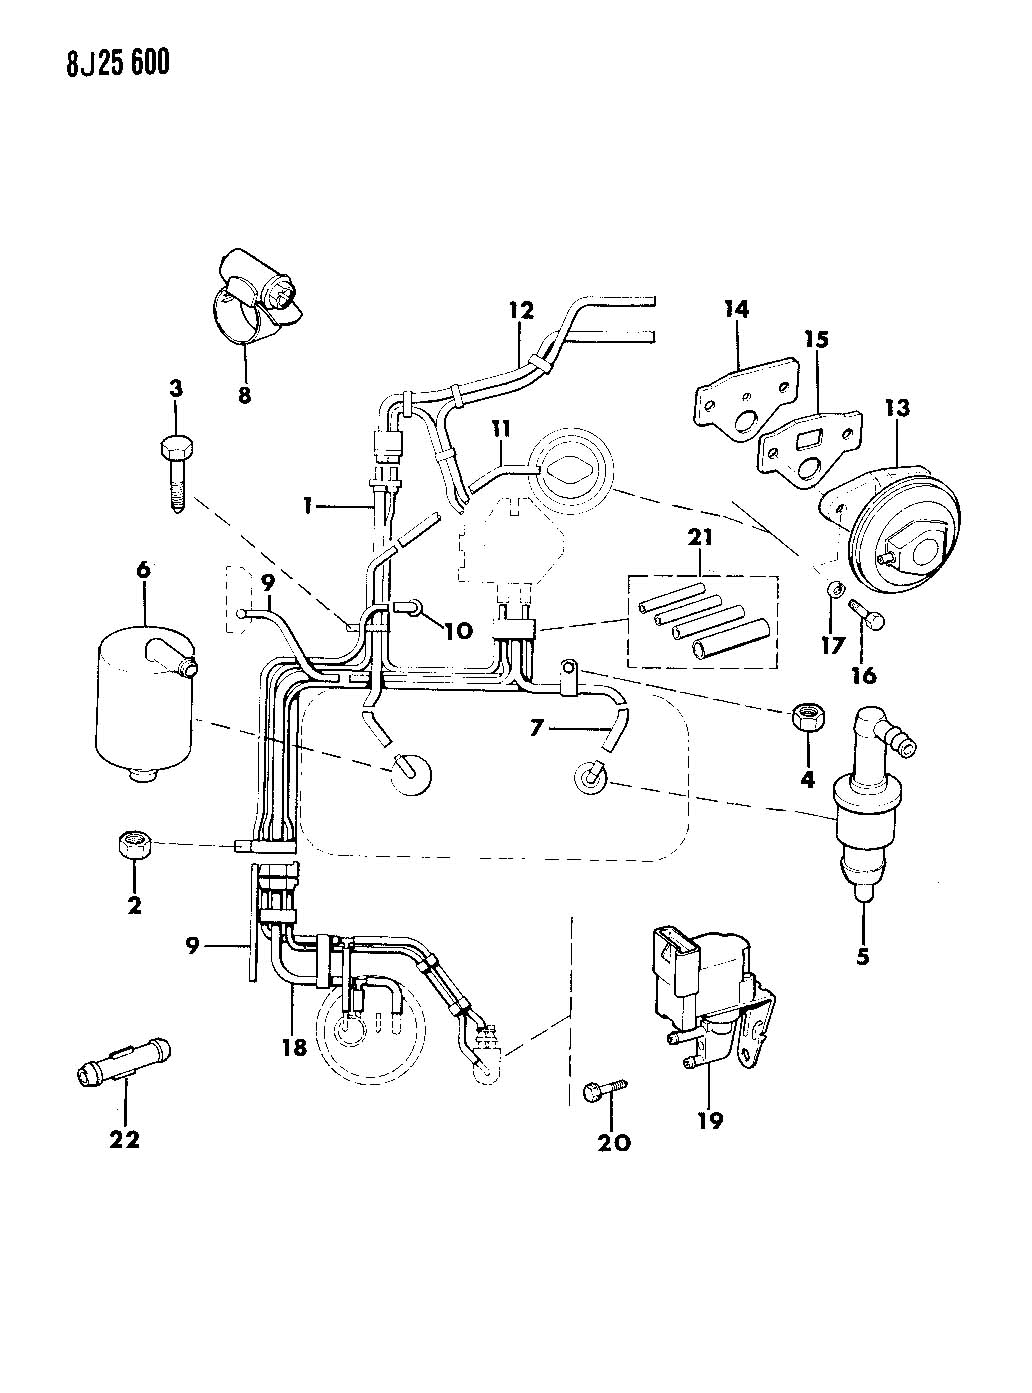 91 Jeep Wrangler Wiring Diagram Together With 1988 Jeep Anche Fuse Box